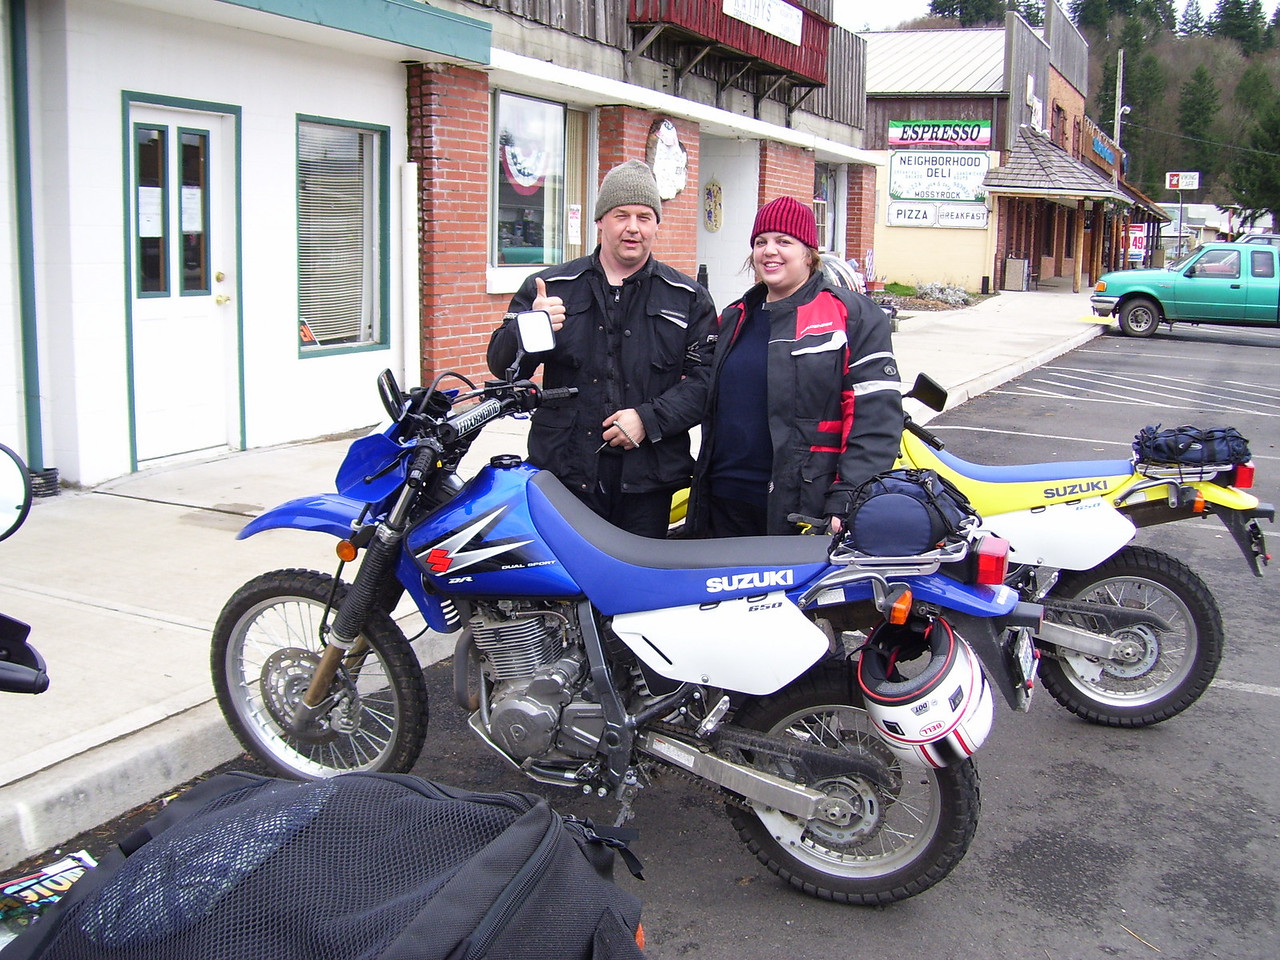 Marty & Cheryl with their DR 650s in Mossyrock where we had lunch. Great ride everybody. We'll see you on the next one!!<br /> <br /> Lan